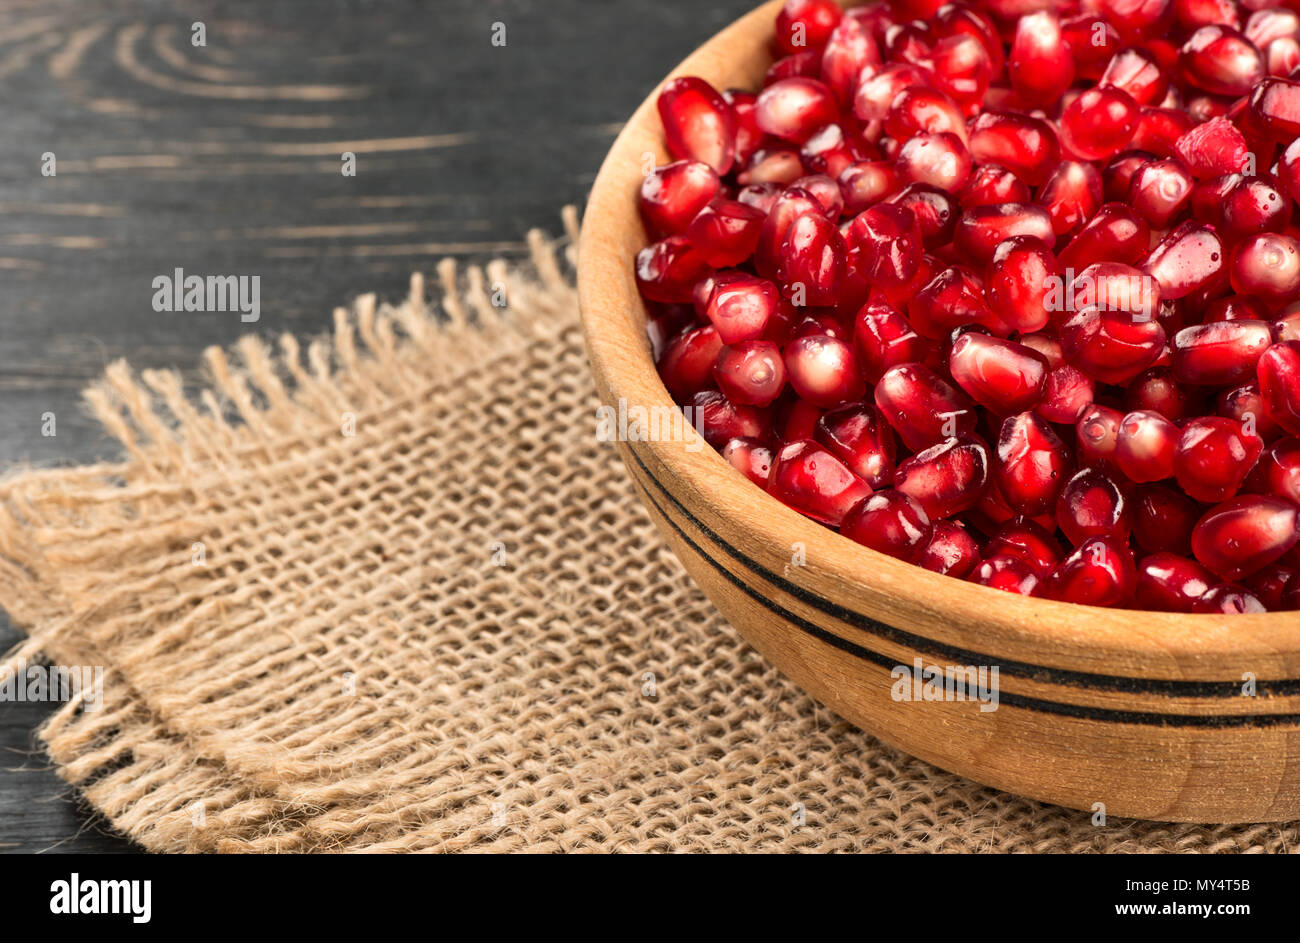 Part bowl filled with pomegranate seeds on sacking close-up - Stock Image